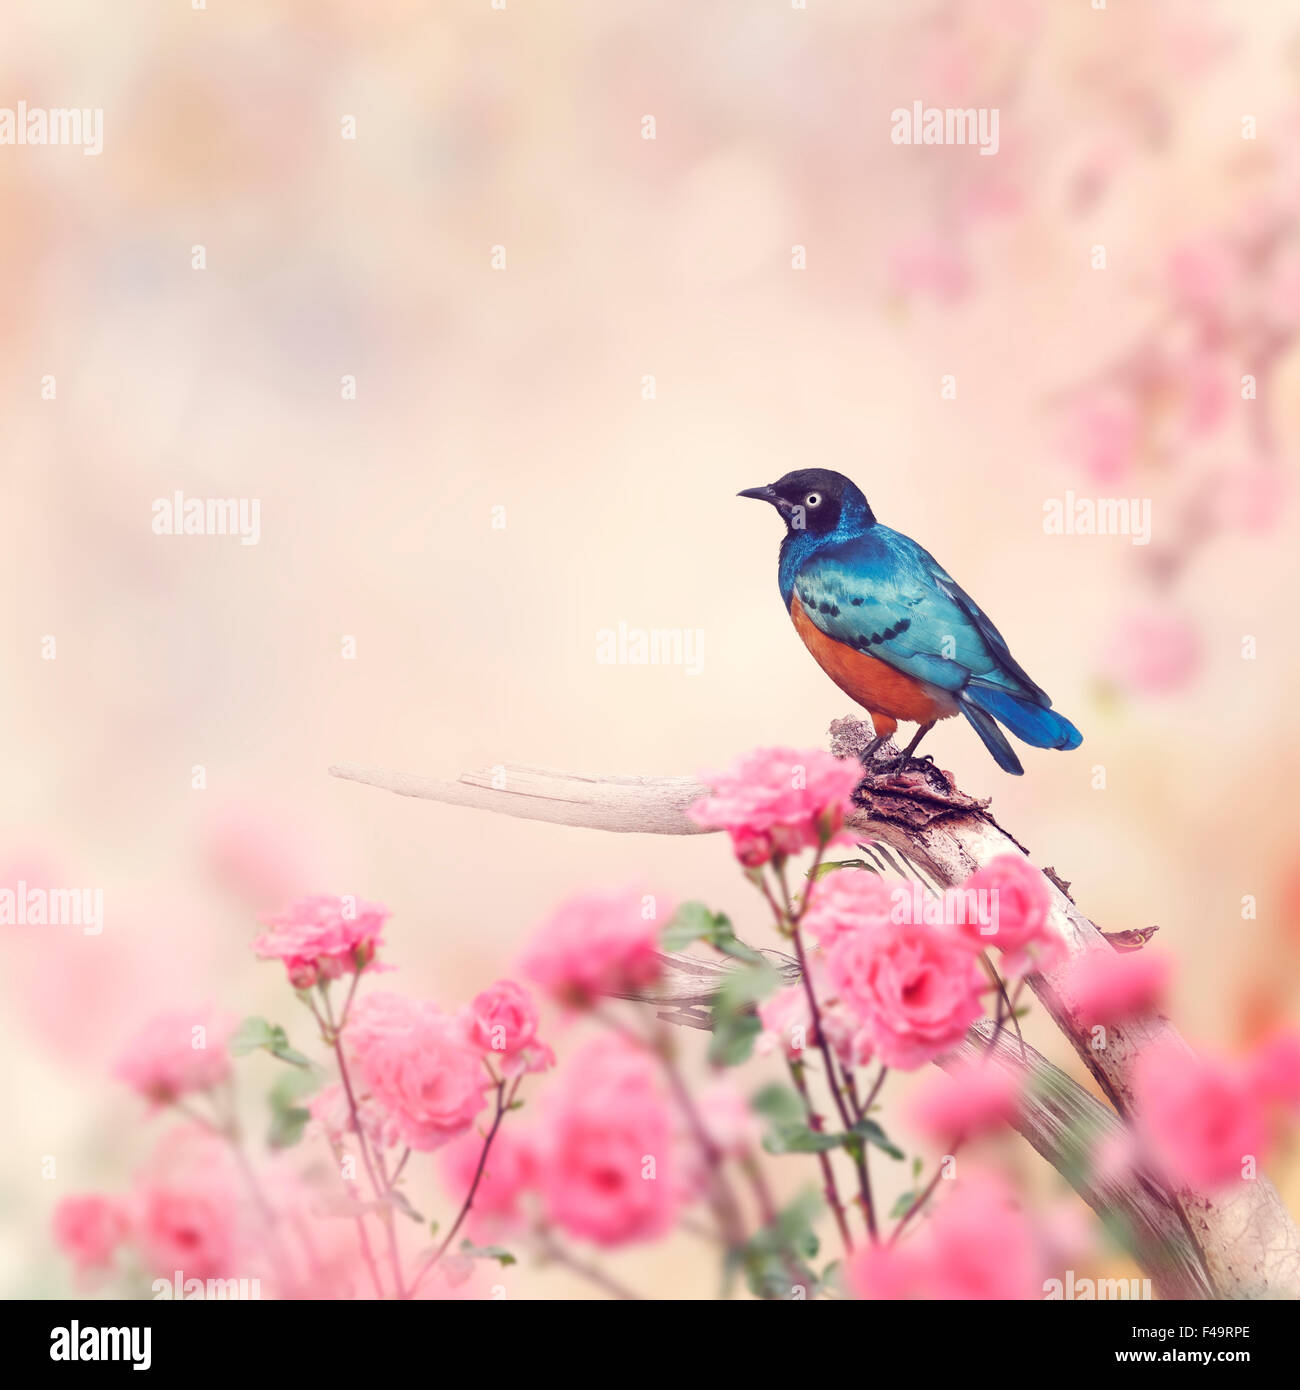 Superb Starling Perches in the Rose Garden - Stock Image